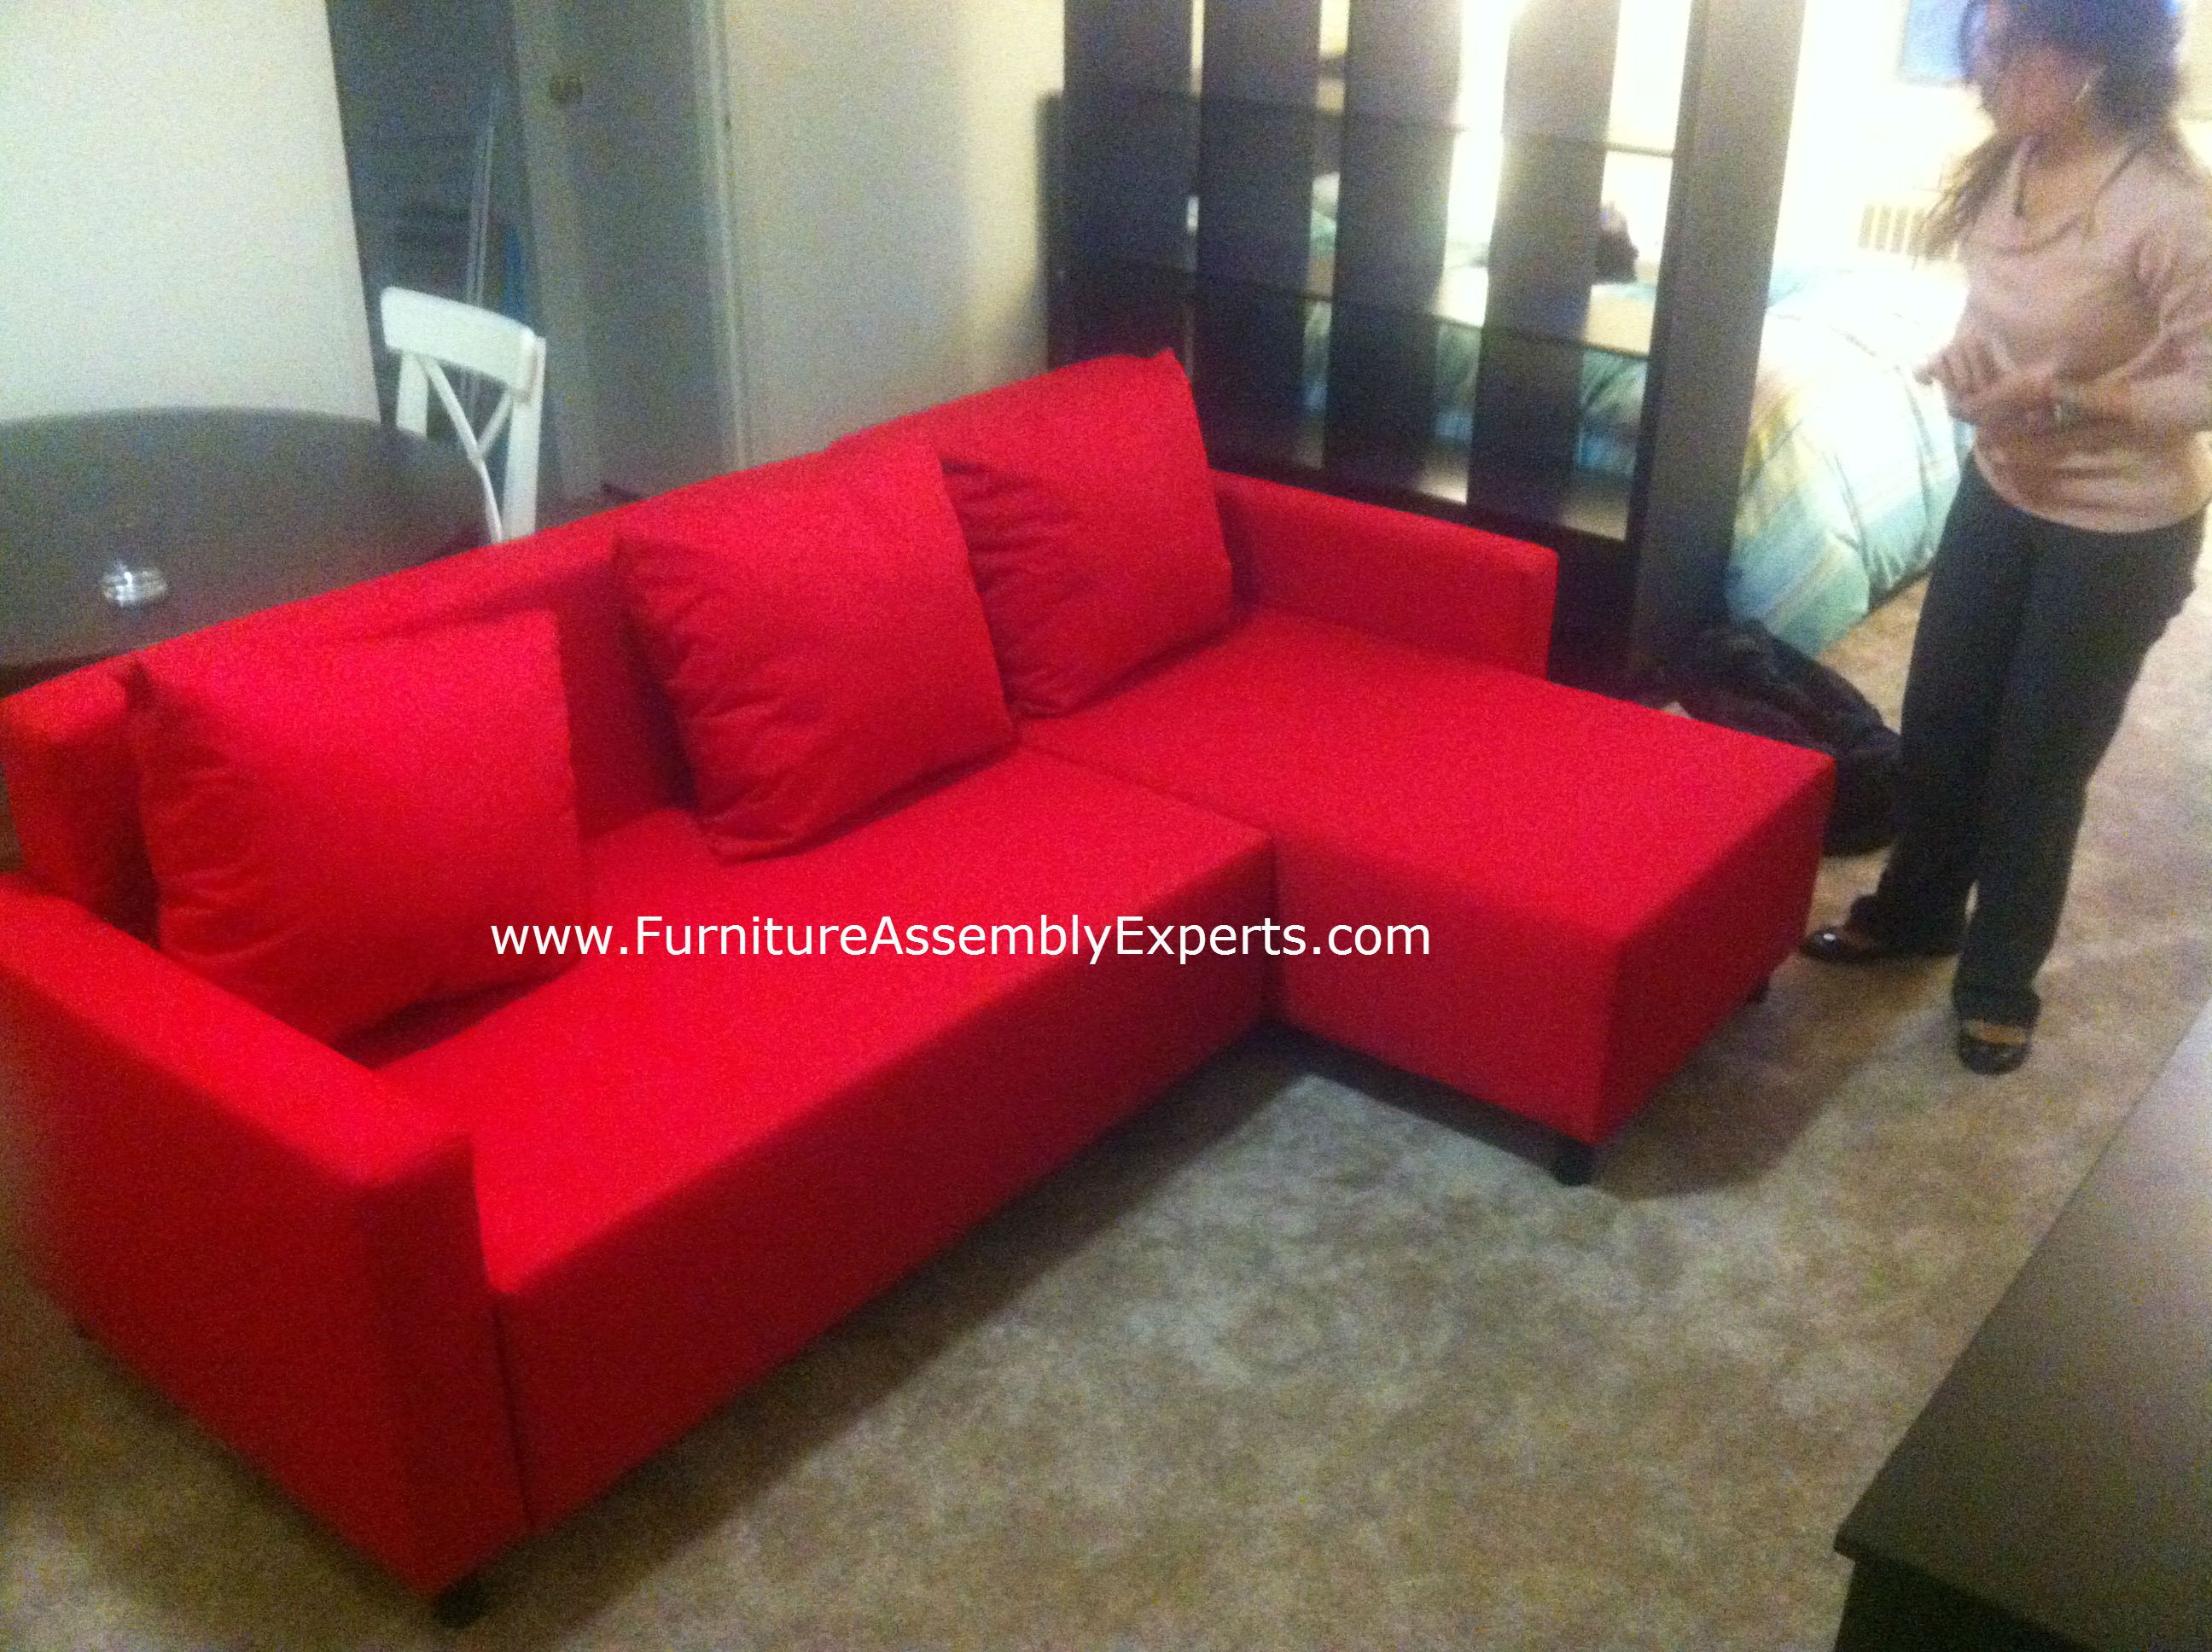 Superieur Ikea Sectional Sofa Bed Red Assembled At State House Apartments In Washington  DC By Furniture Assembly Experts LLC